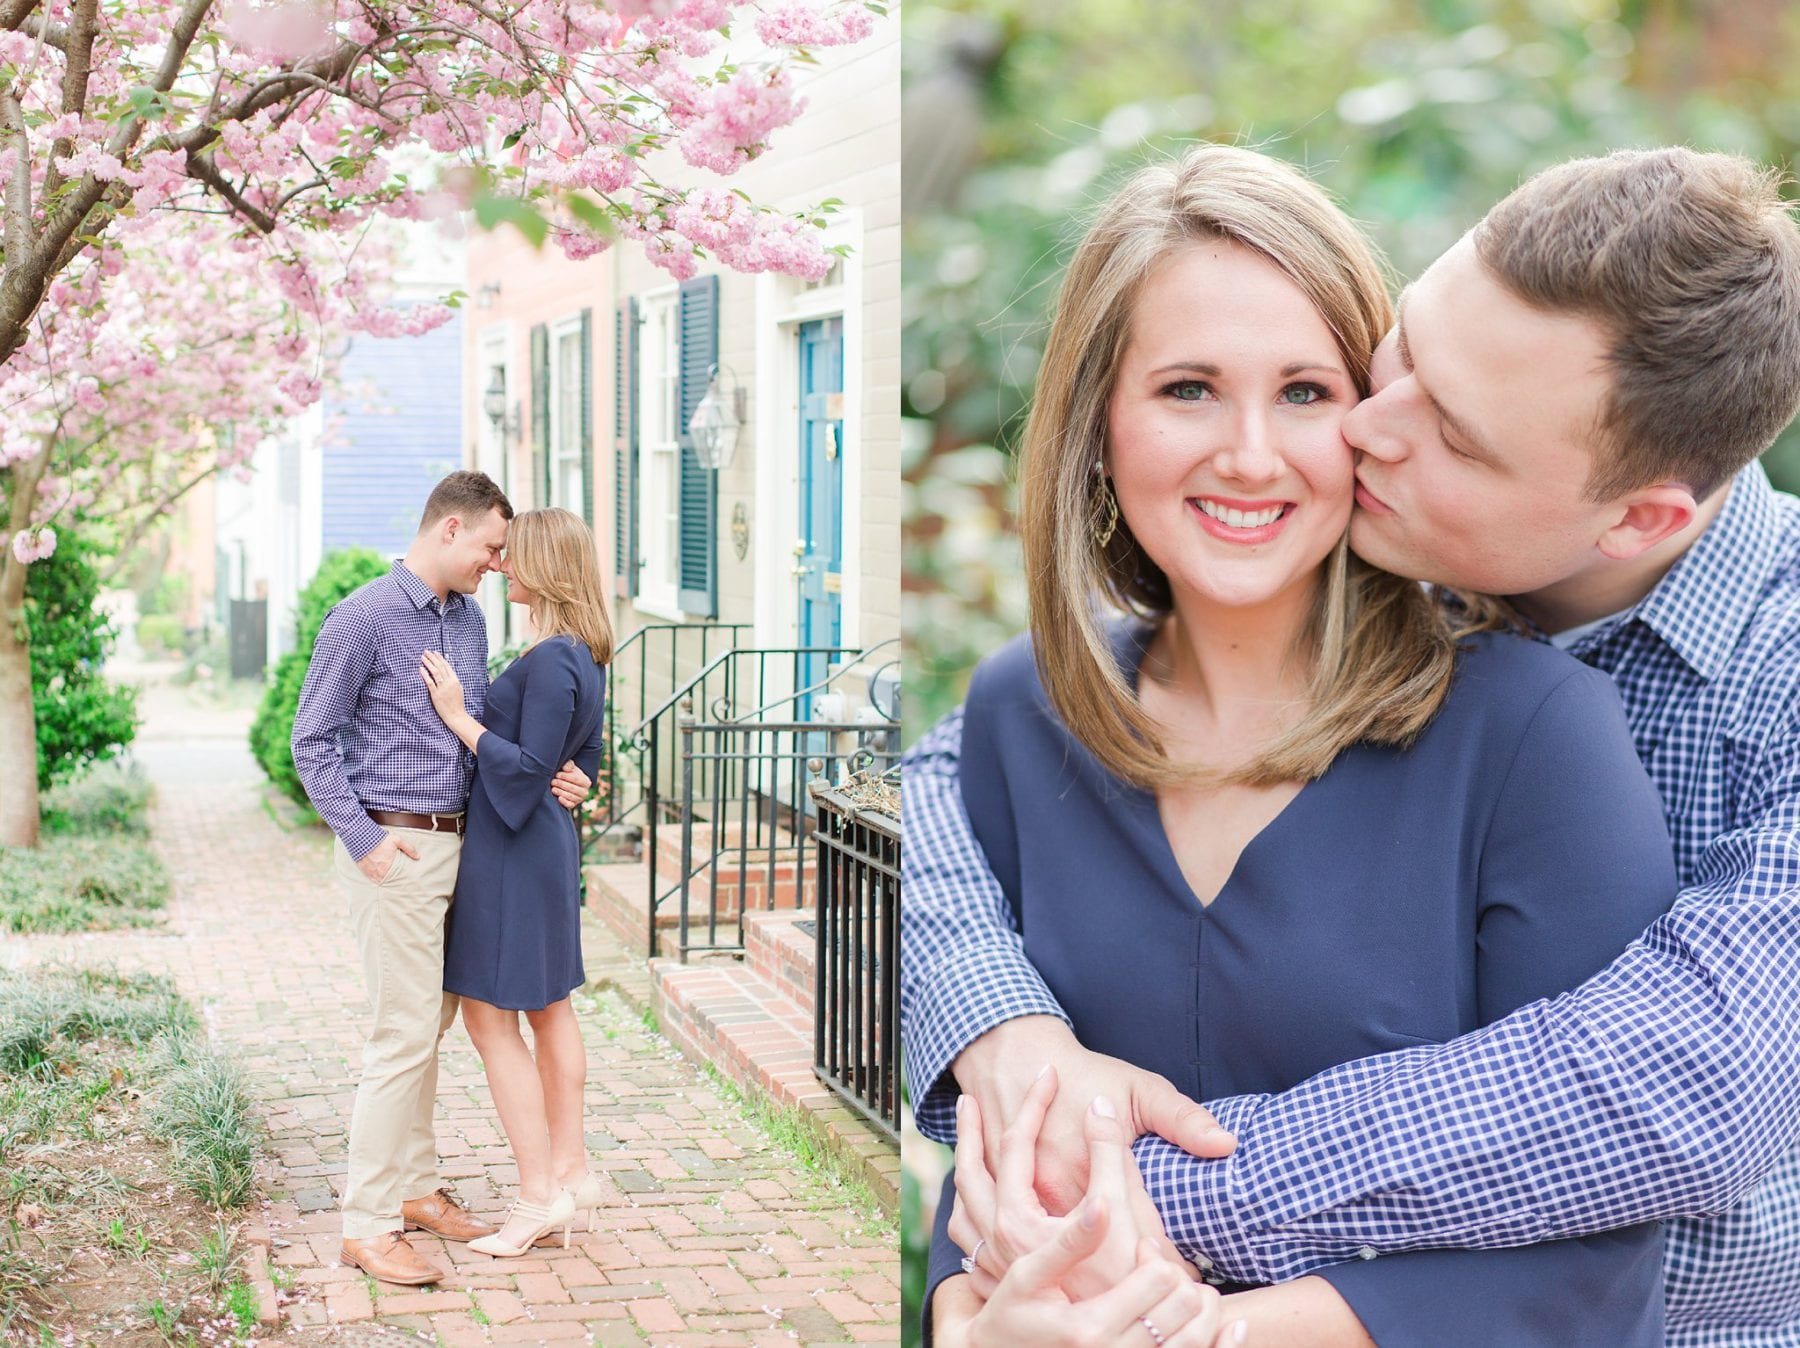 Springtime Old Town Alexandria Engagement Session Matt & Maxie Megan Kelsey Photography-42.jpg